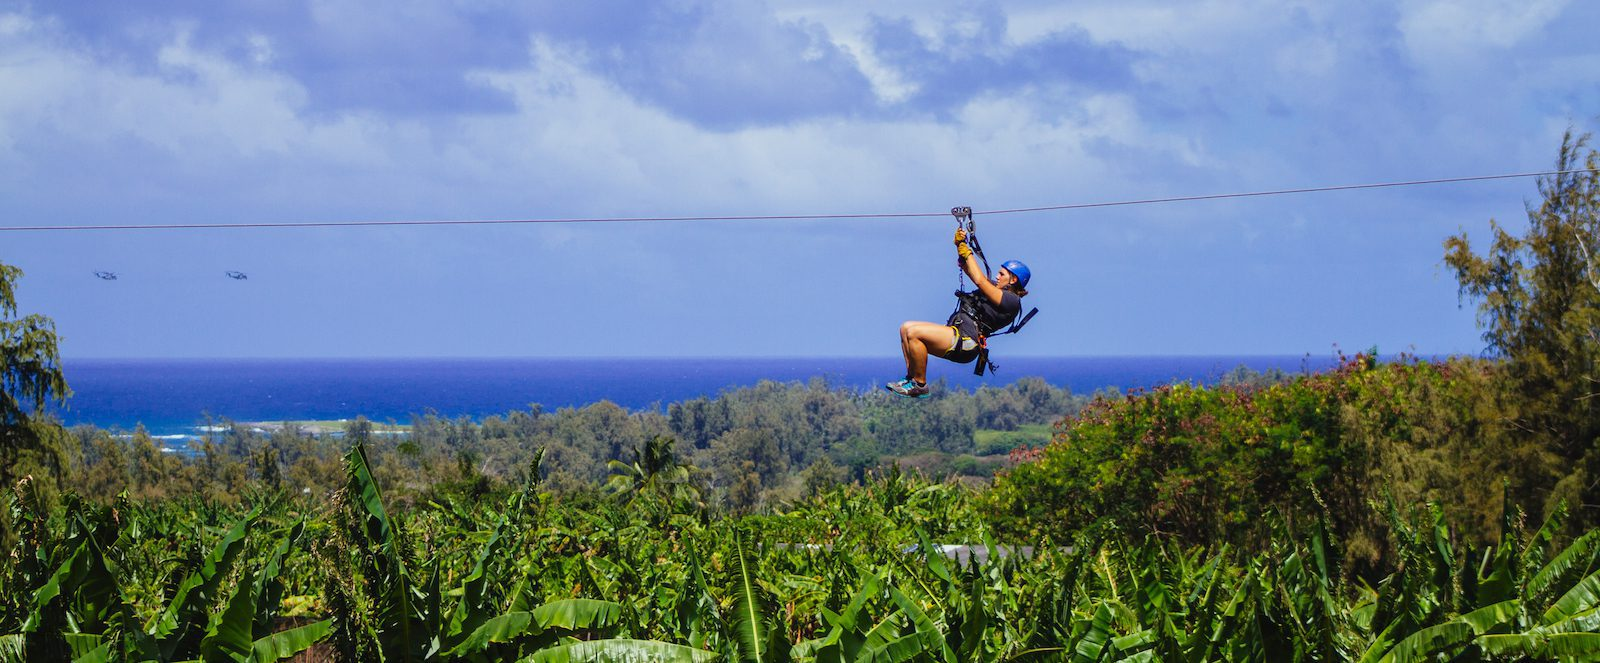 4 Tips to Have the Best Time Ziplining in Oahu